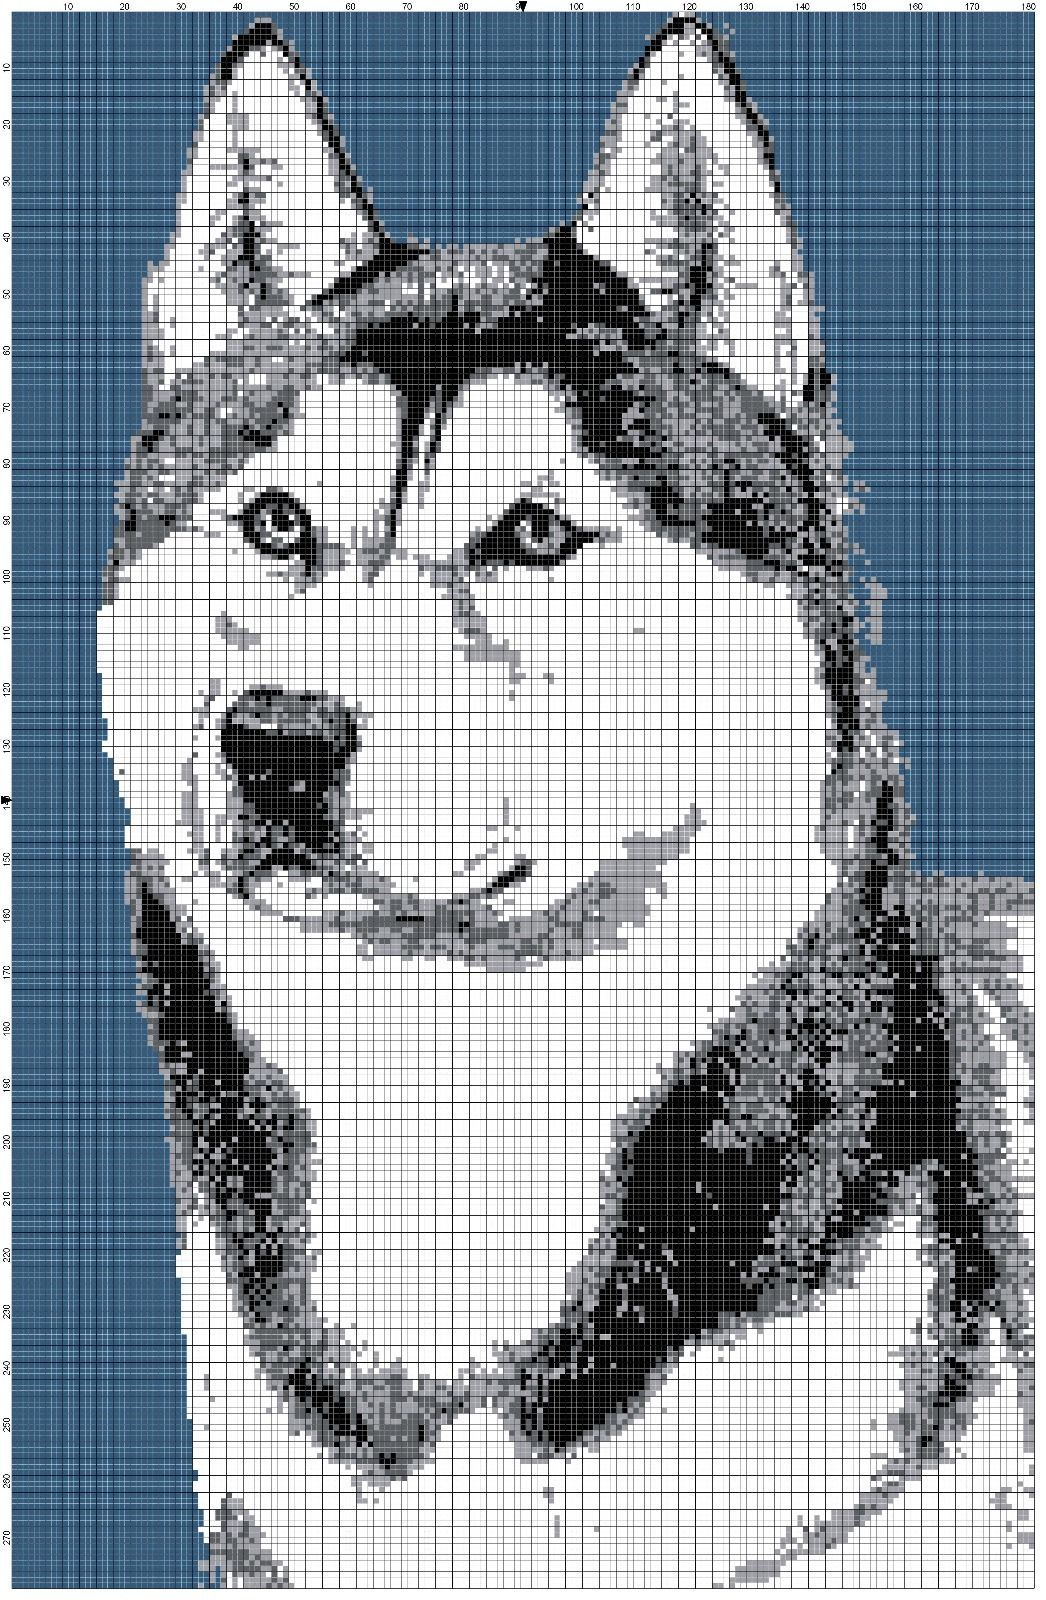 Crochet patterns siberian husky graph afghan pattern chart dog 1 of 1 siberian husky afghan crochet graph dog pattern by altas crafts bankloansurffo Image collections